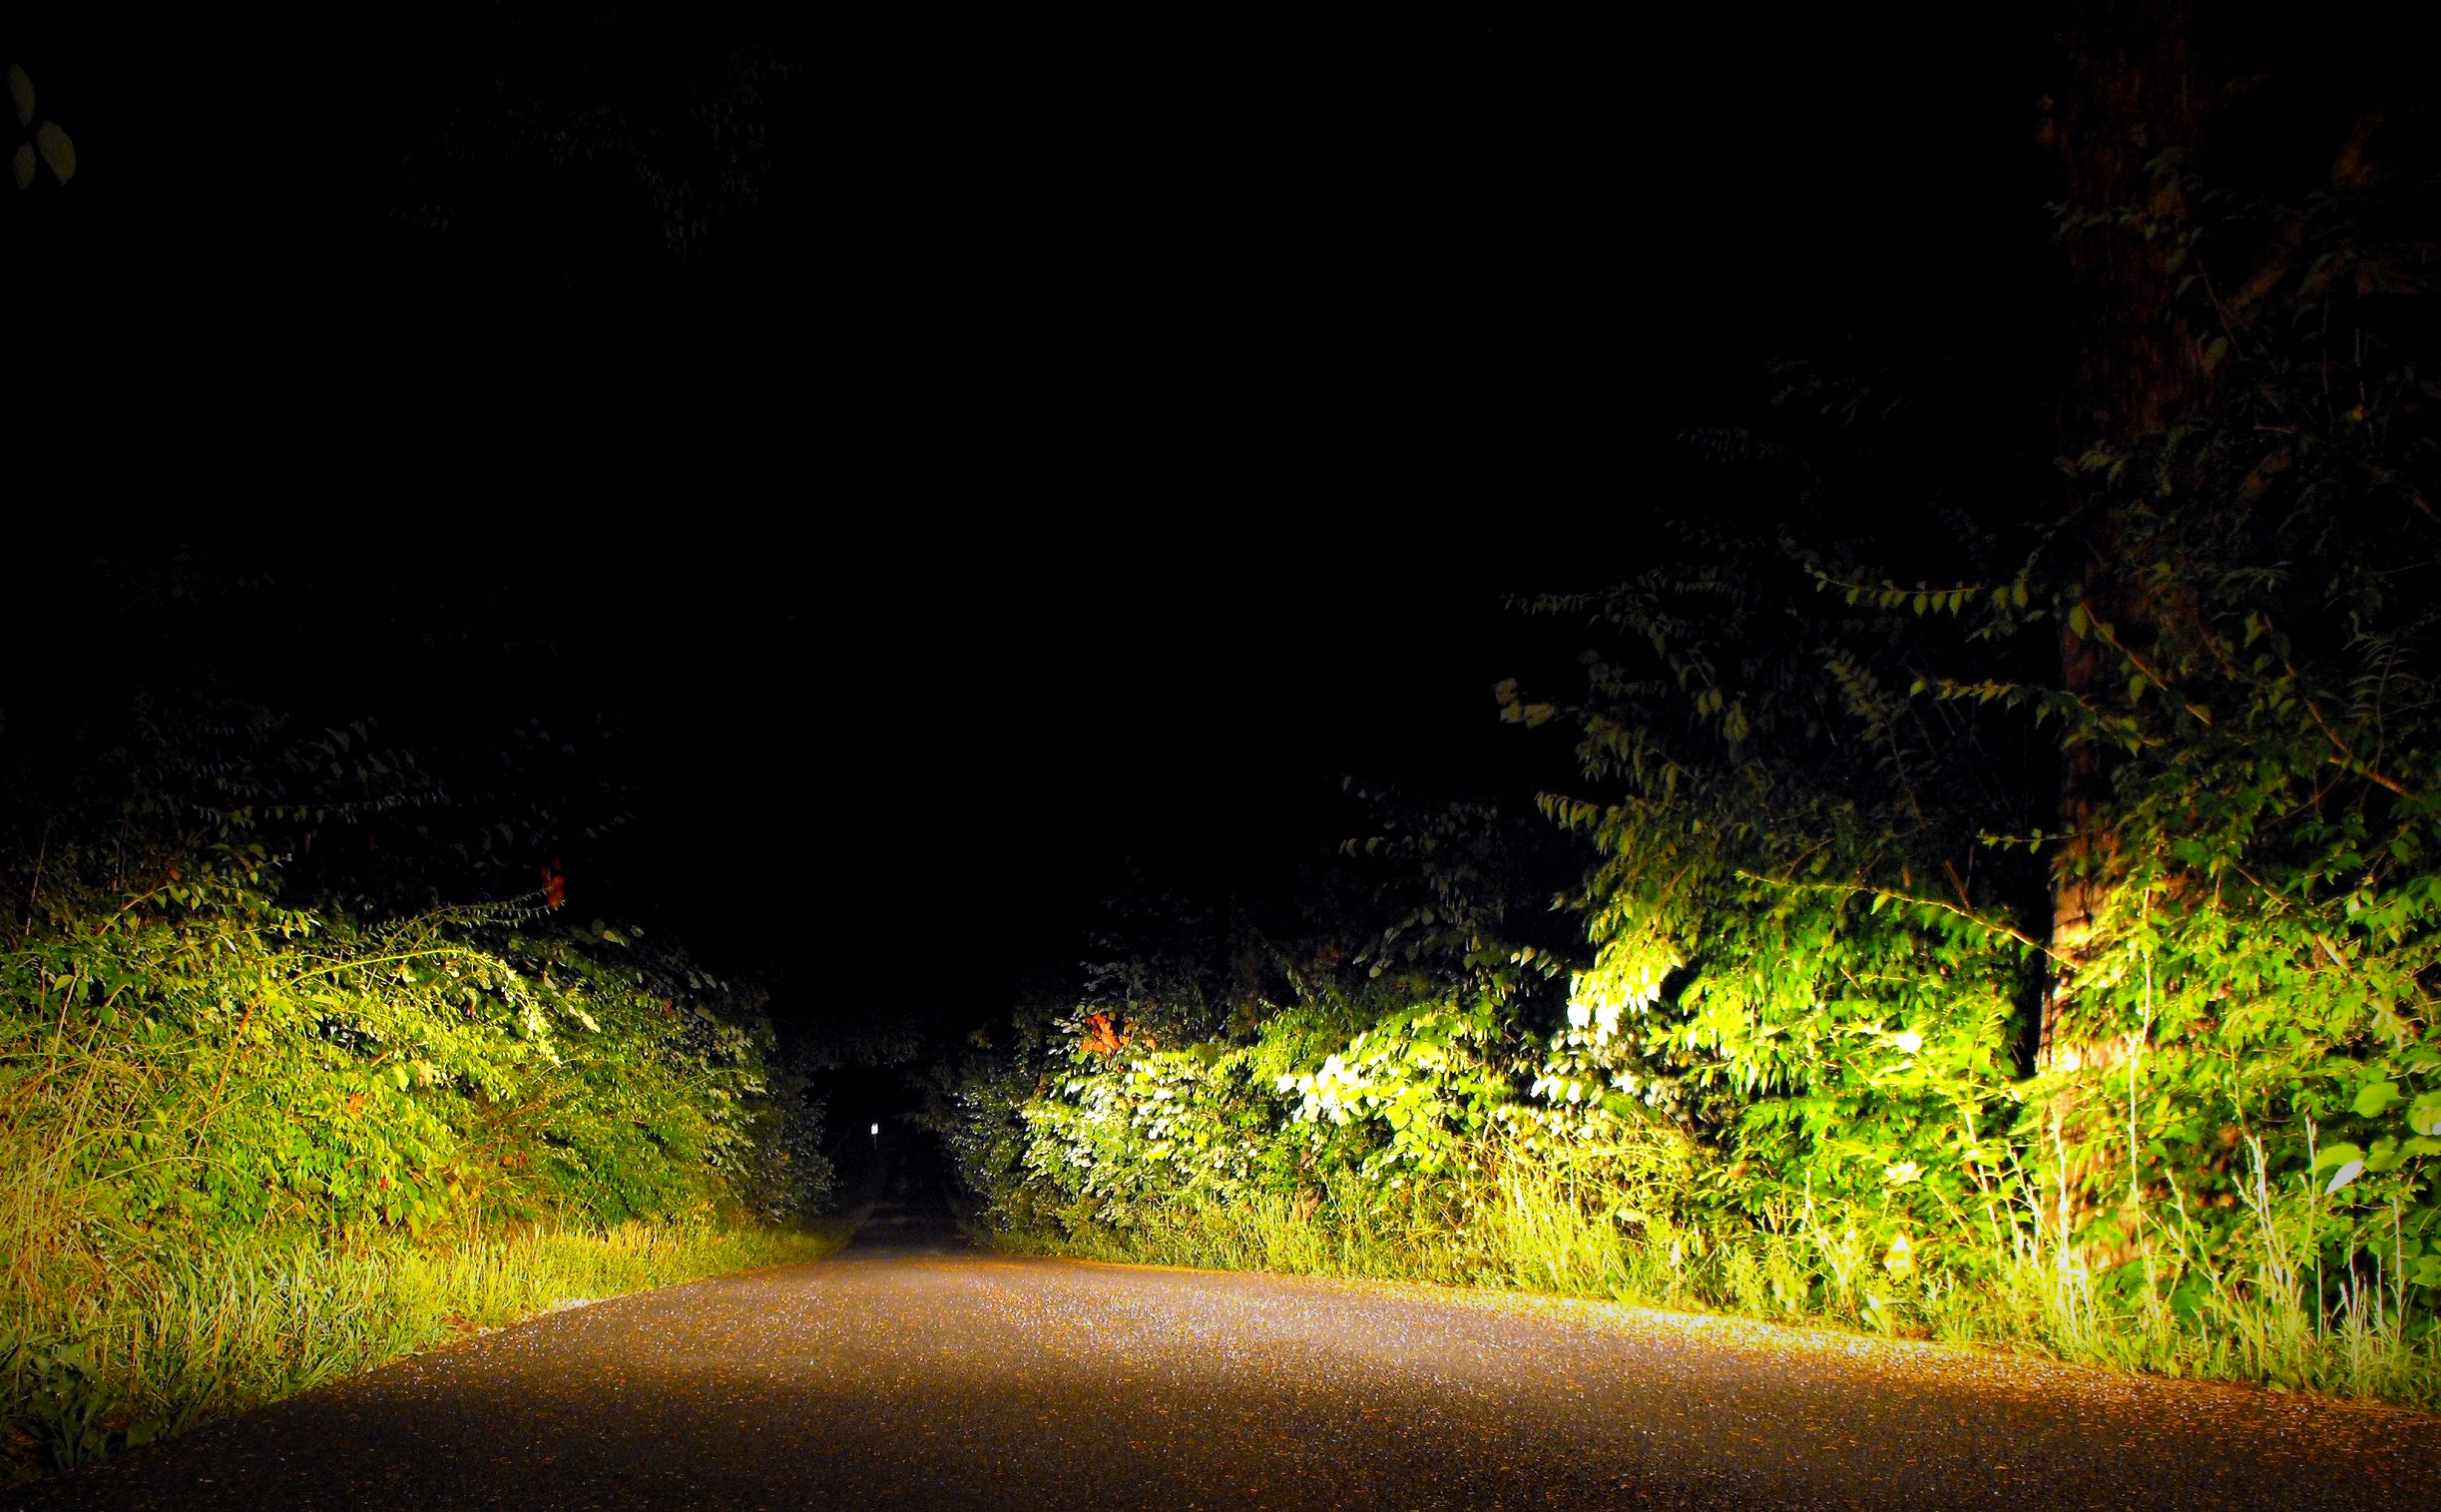 6 Reasons This Haunted Kentucky Road is Bone-Chilling